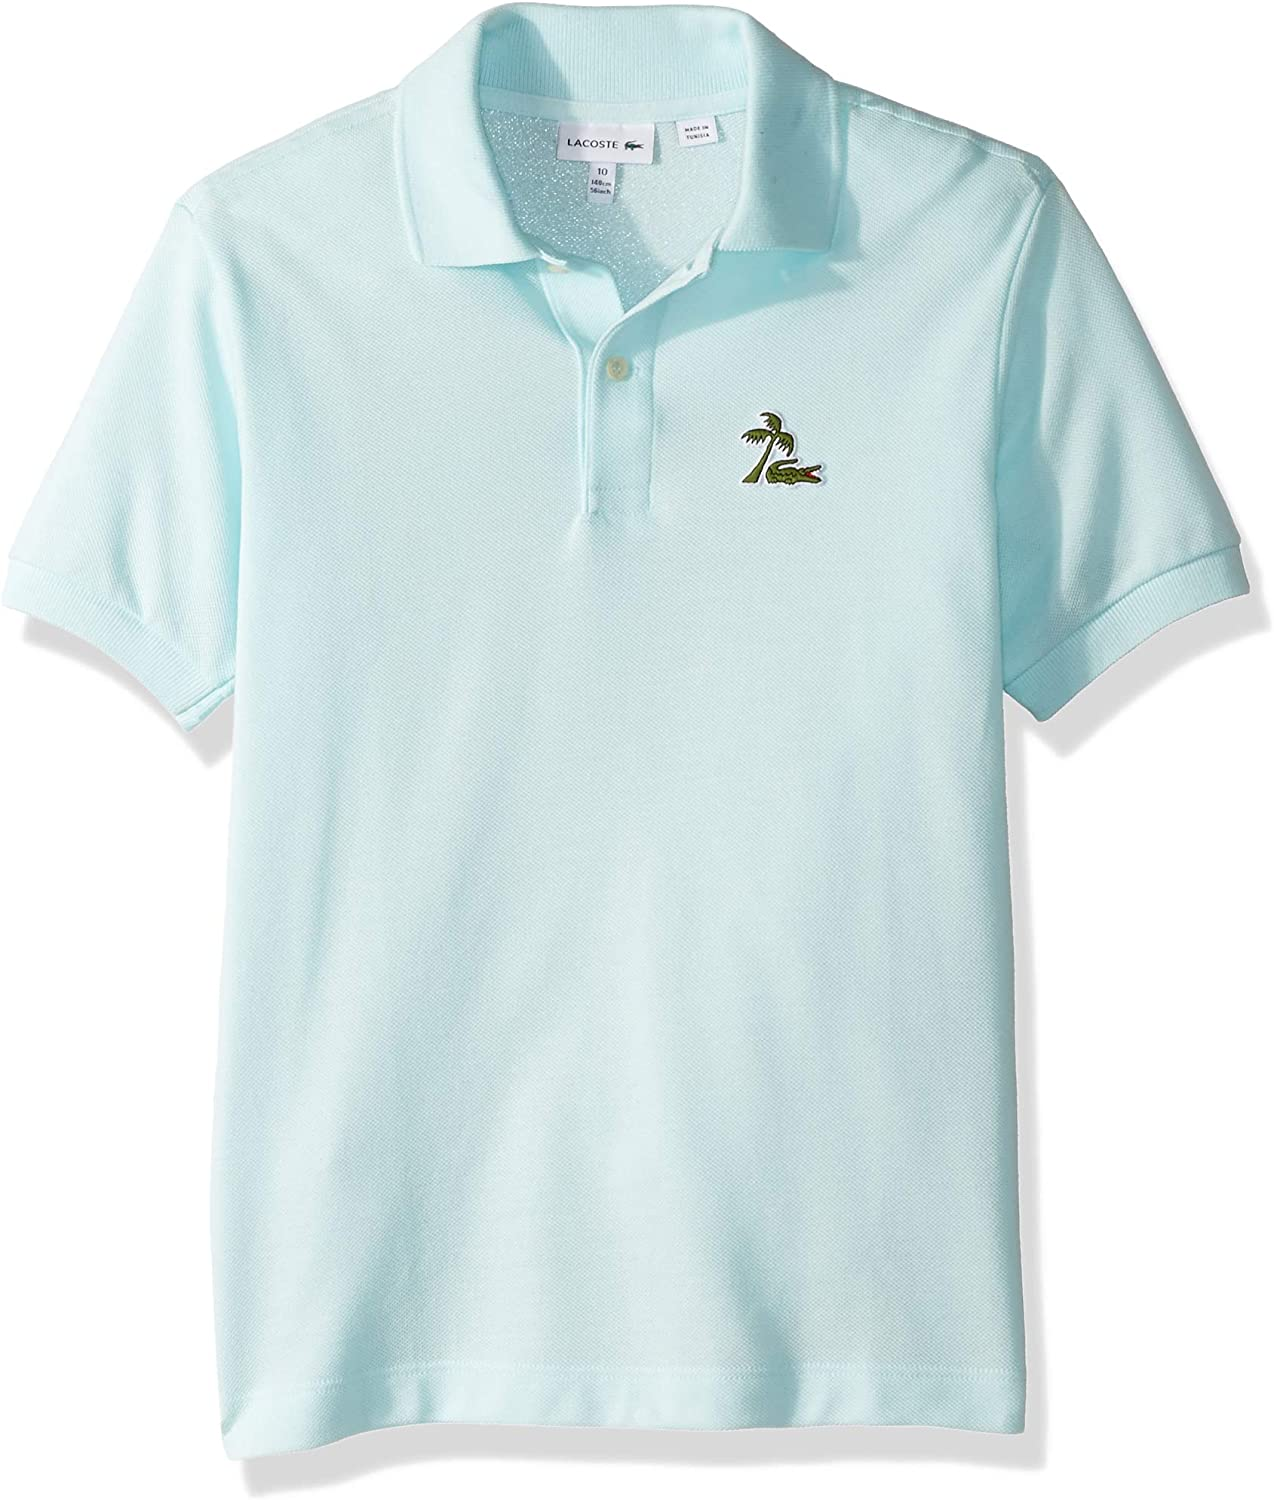 Lacoste Boy Mini Me Palm Tree Croc Polo - Azul - 5 Años: Amazon.es ...